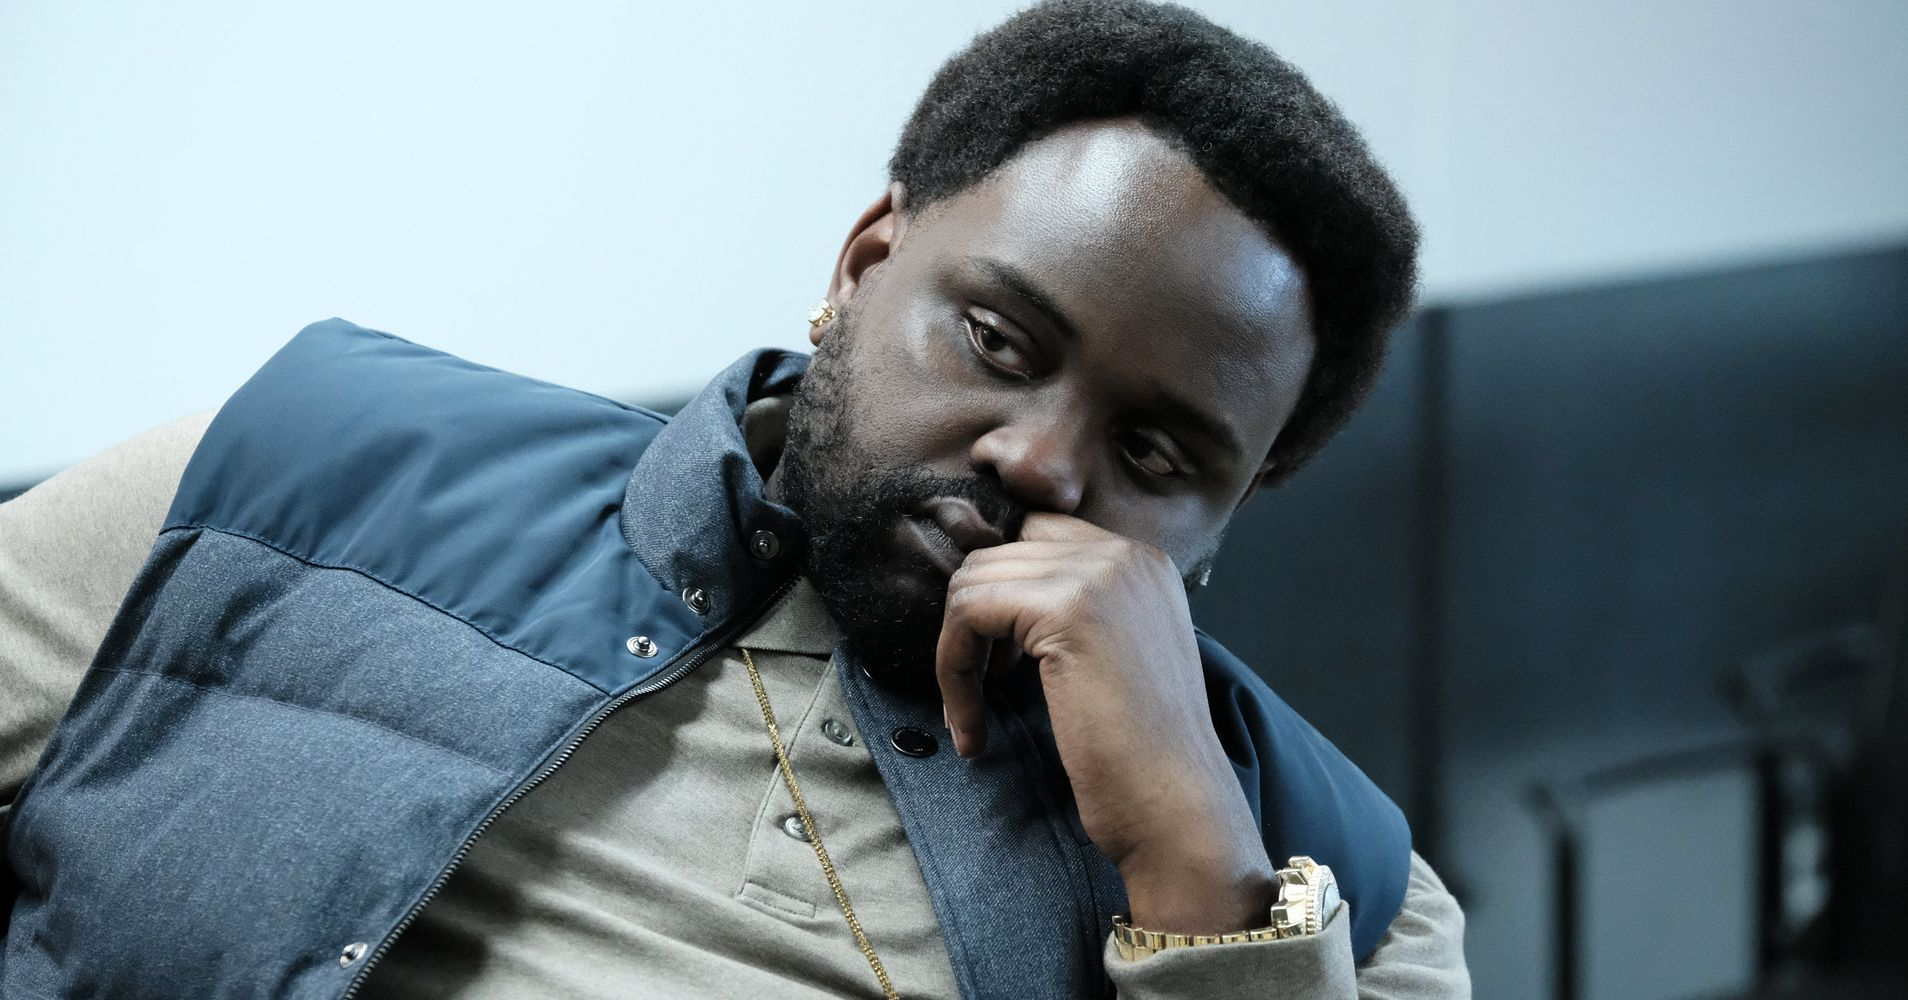 Atlanta Explores The Unshakeable Intimacy Between A Man And His